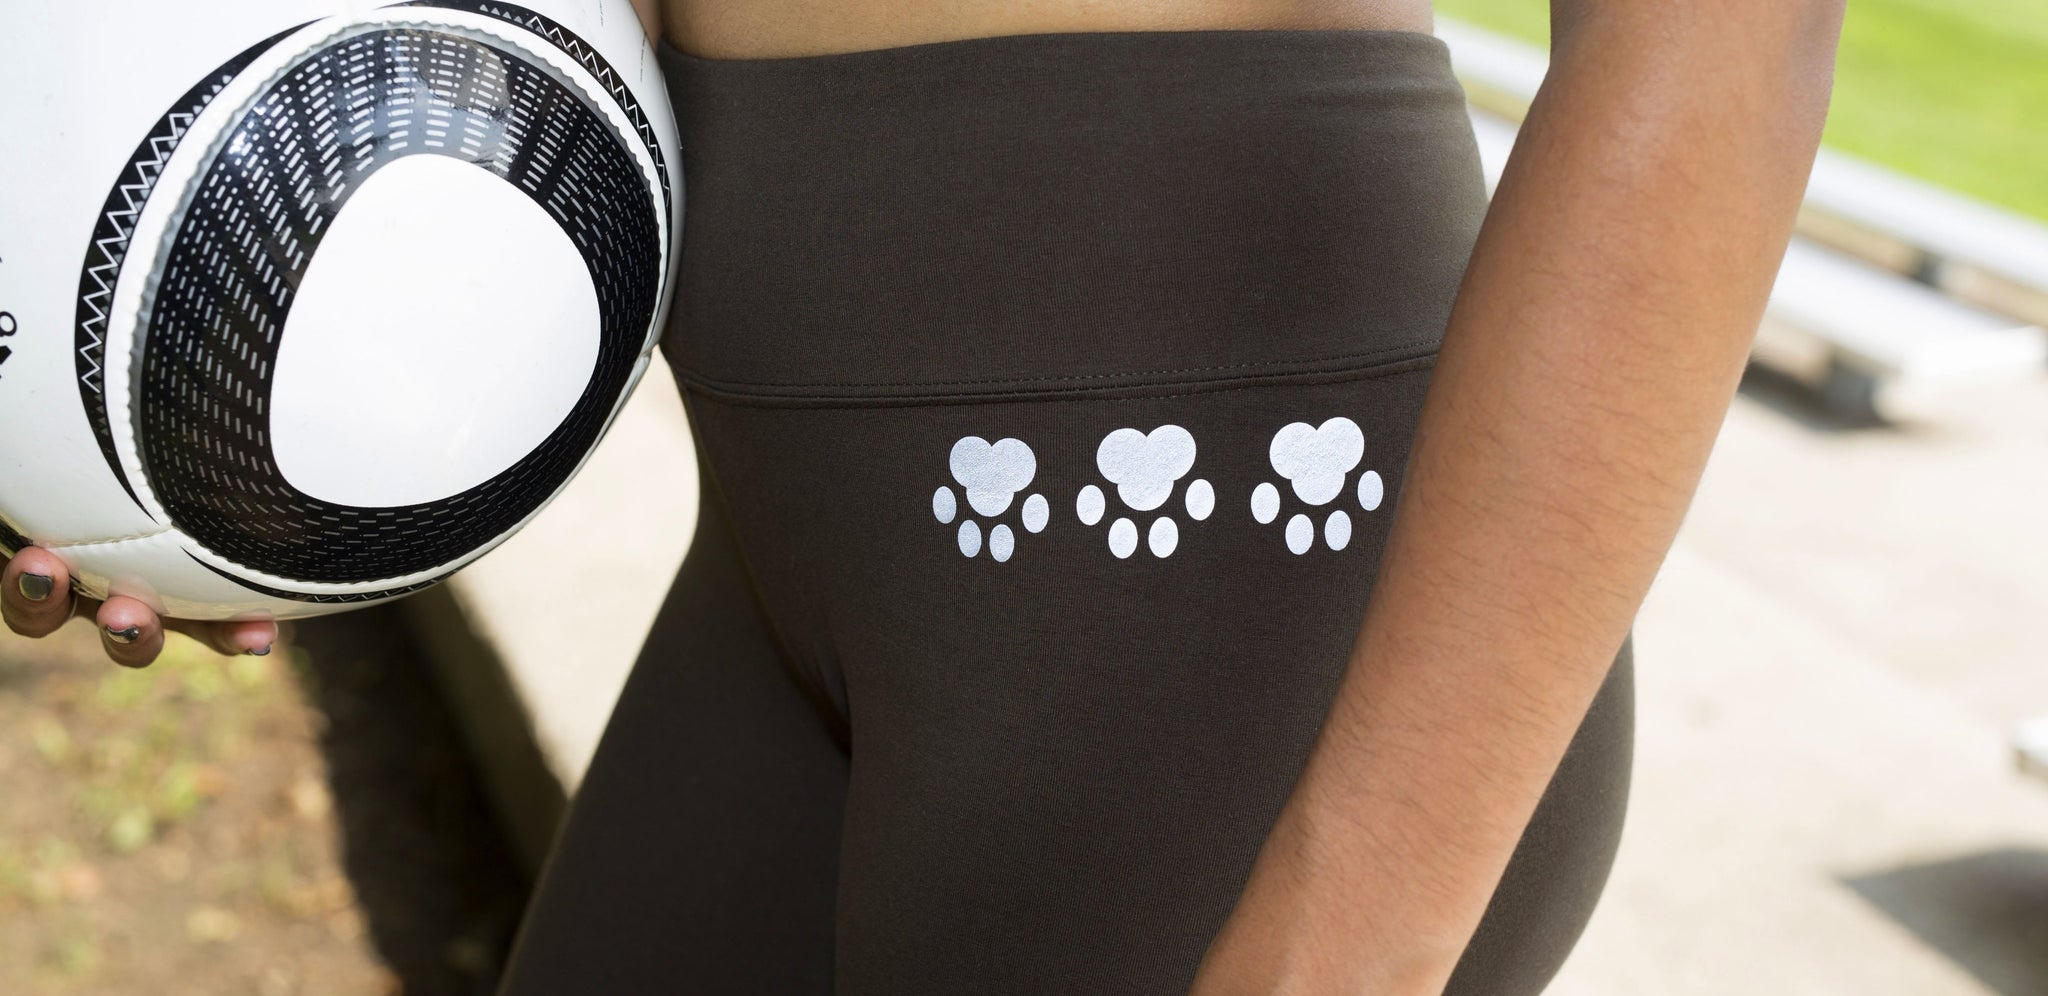 High visibility reflective iron-on decals. Made with 3M™ Scotchlite™ Reflective Material. Feel safer, hiking, walking, running. Create your own reflective outfit, apparel, activewear. Customizable, easy to apply, do it yourself. Noktillu Paw Print design.